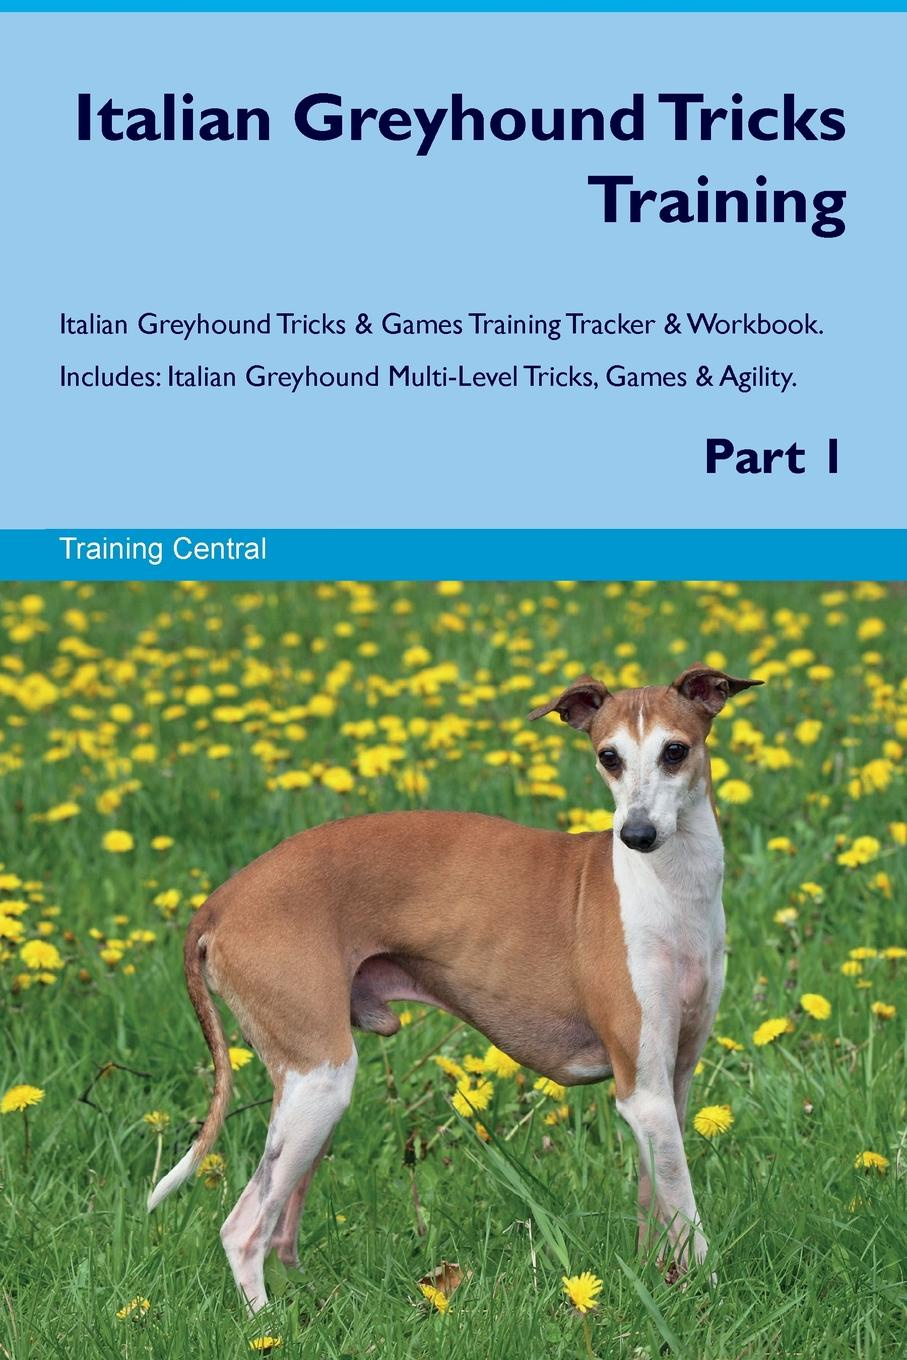 Training Central Italian Greyhound Tricks Training Italian Greyhound Tricks & Games Training Tracker & Workbook. Includes. Italian Greyhound Multi-Level Tricks, Games & Agility. Part 1